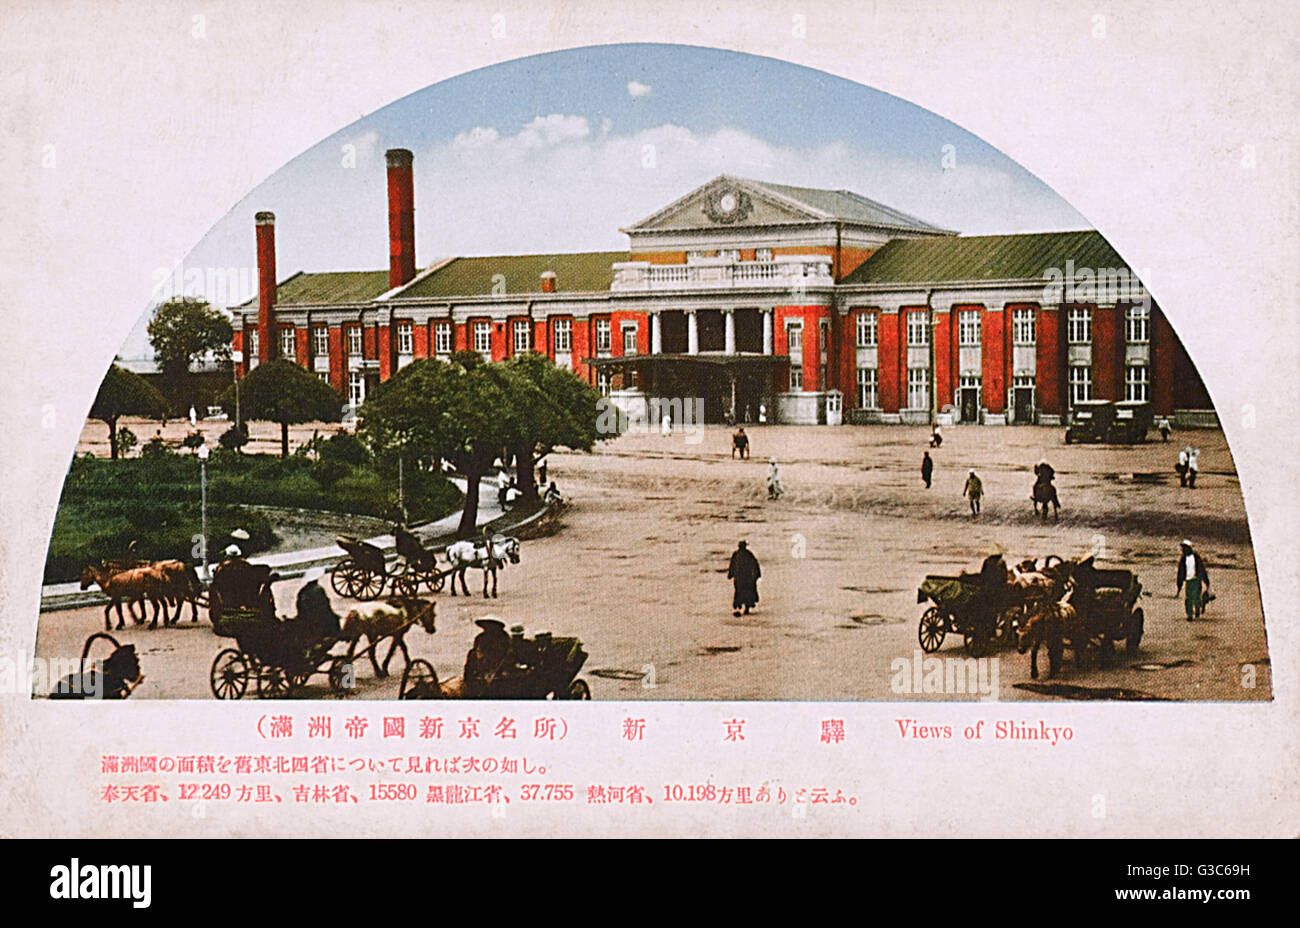 Changchun Railway Station. Changchun is the capital and largest city of Jilin province, located in the northeast - Stock Image